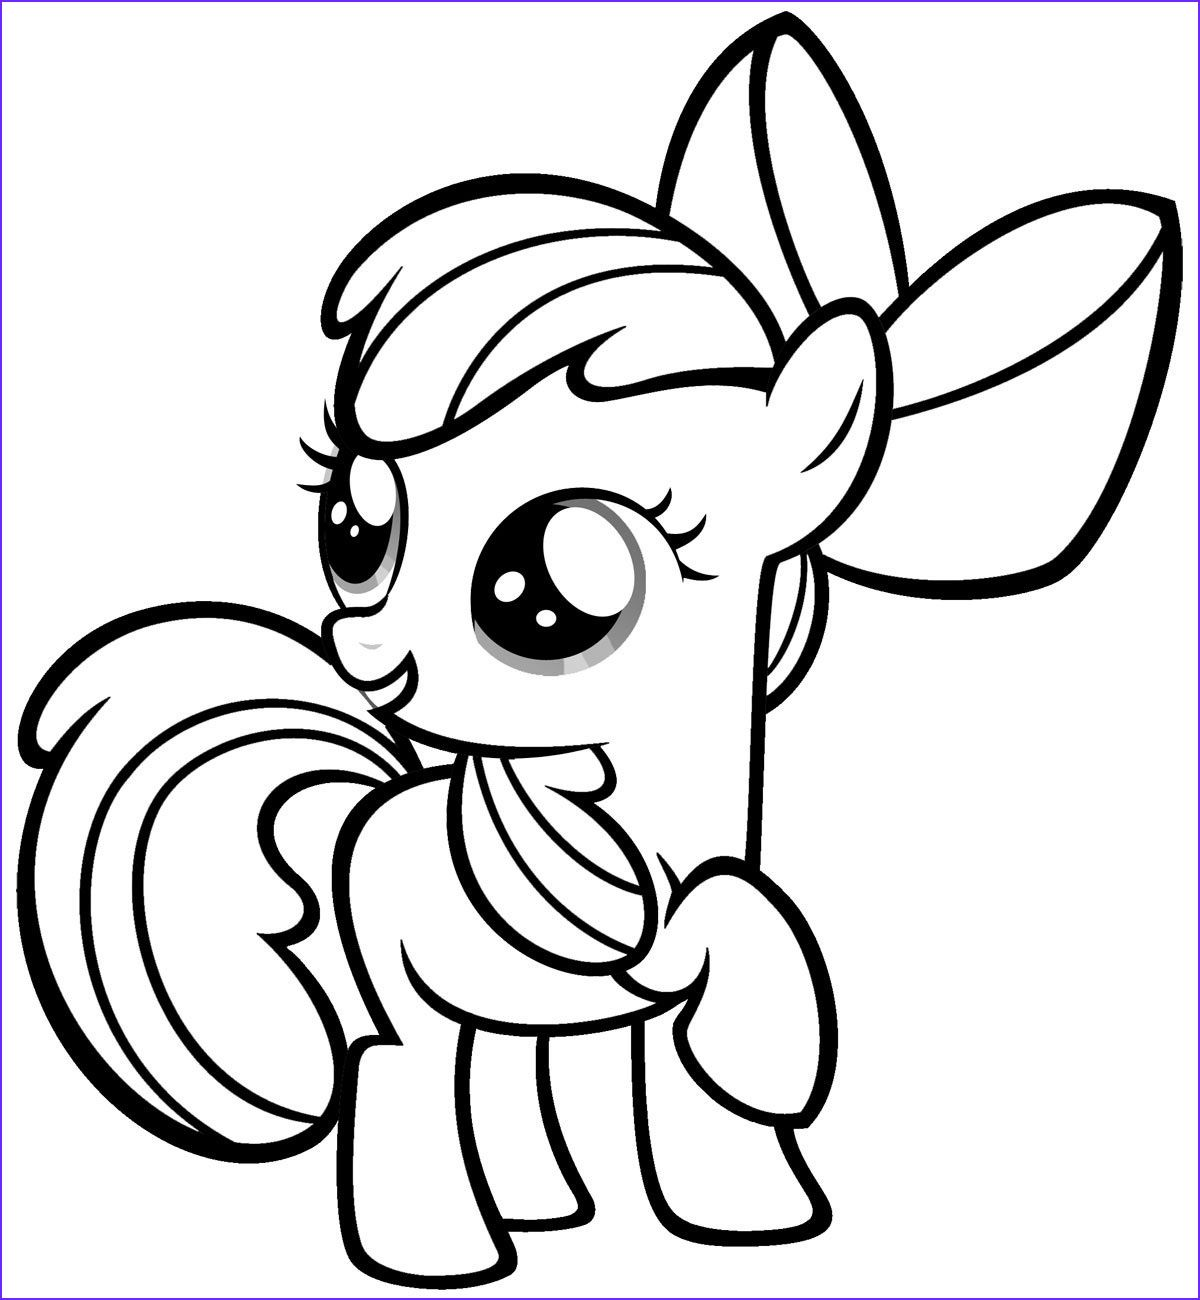 My Little Pony Coloring Sheets 2018 Dr Odd in 2020 ...